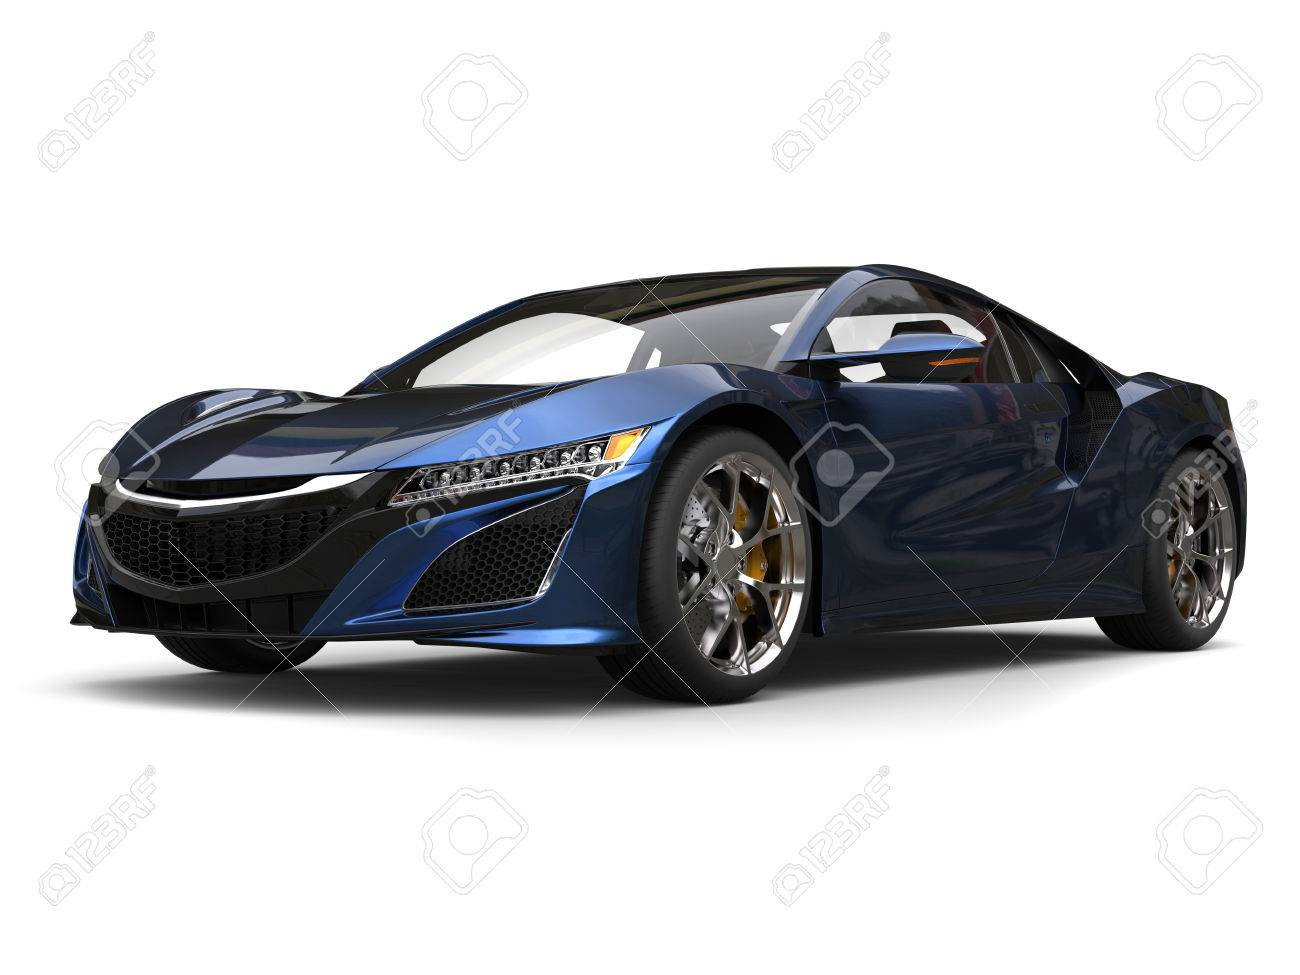 Pearlescent Car Paint >> Super Concept Sports Car Pearlescent Black And Blue Paint Stock